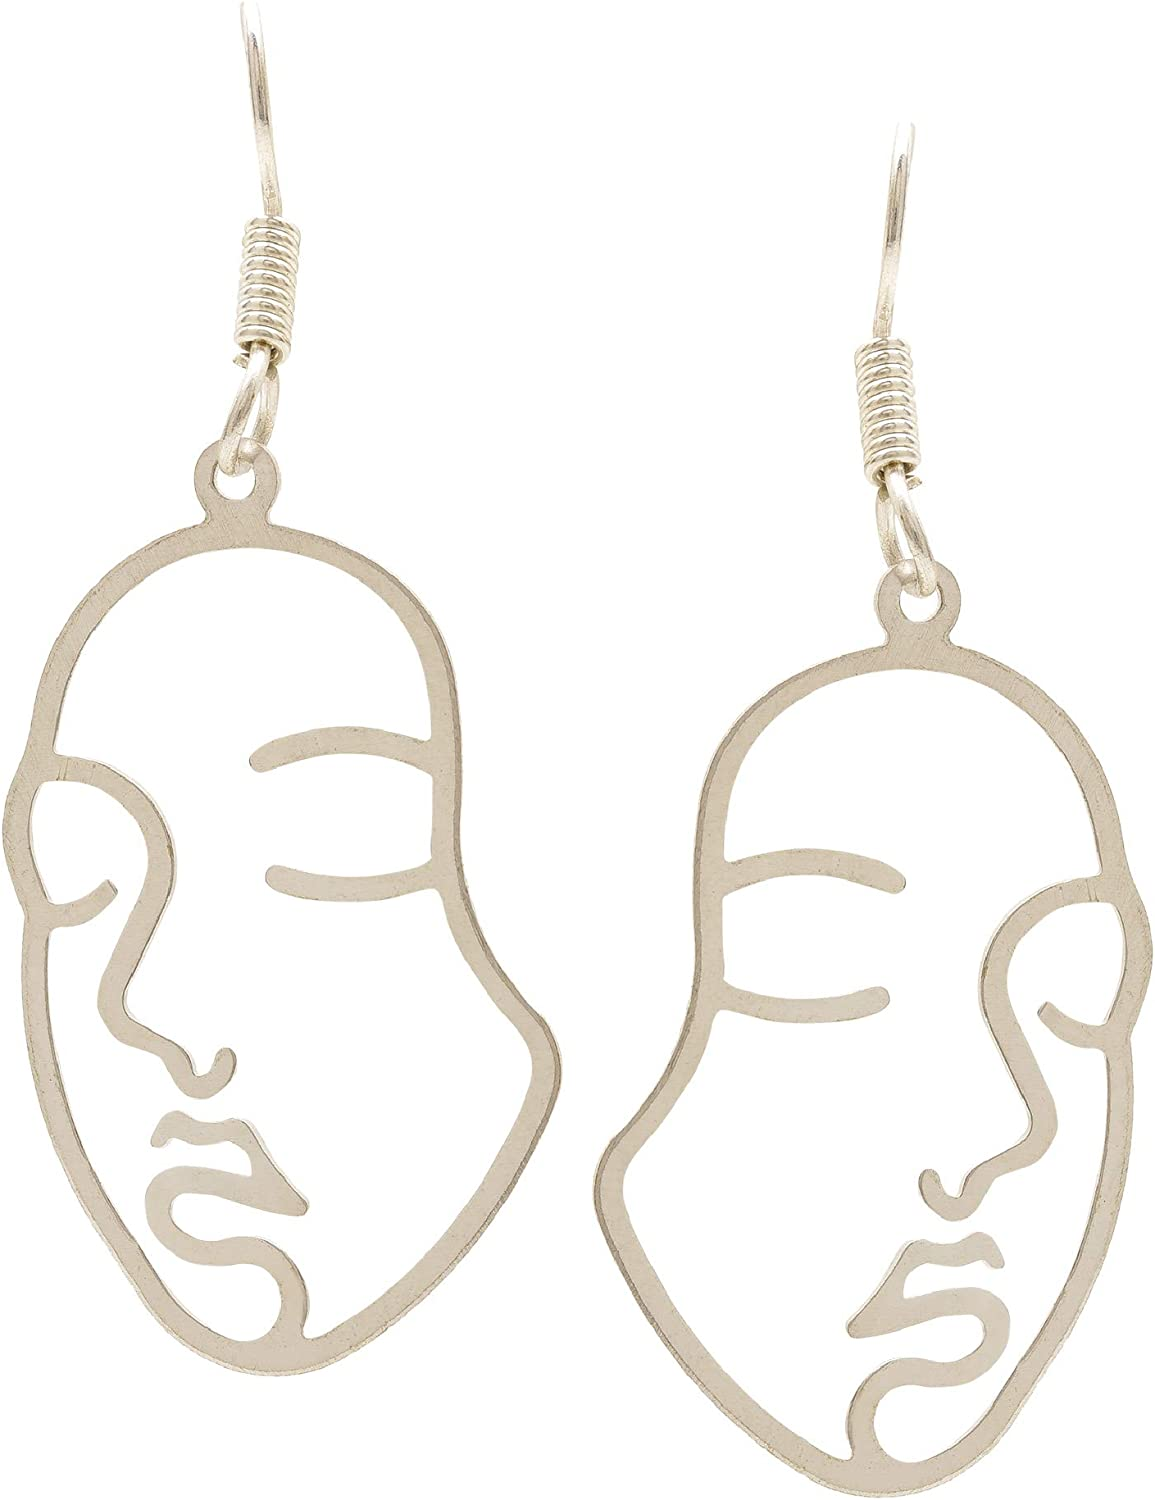 Efulgenz Fashion Silver Plated Face Abstract Vintage Hypoallergenic Dangle Hanging Statement Earrings Jewelry